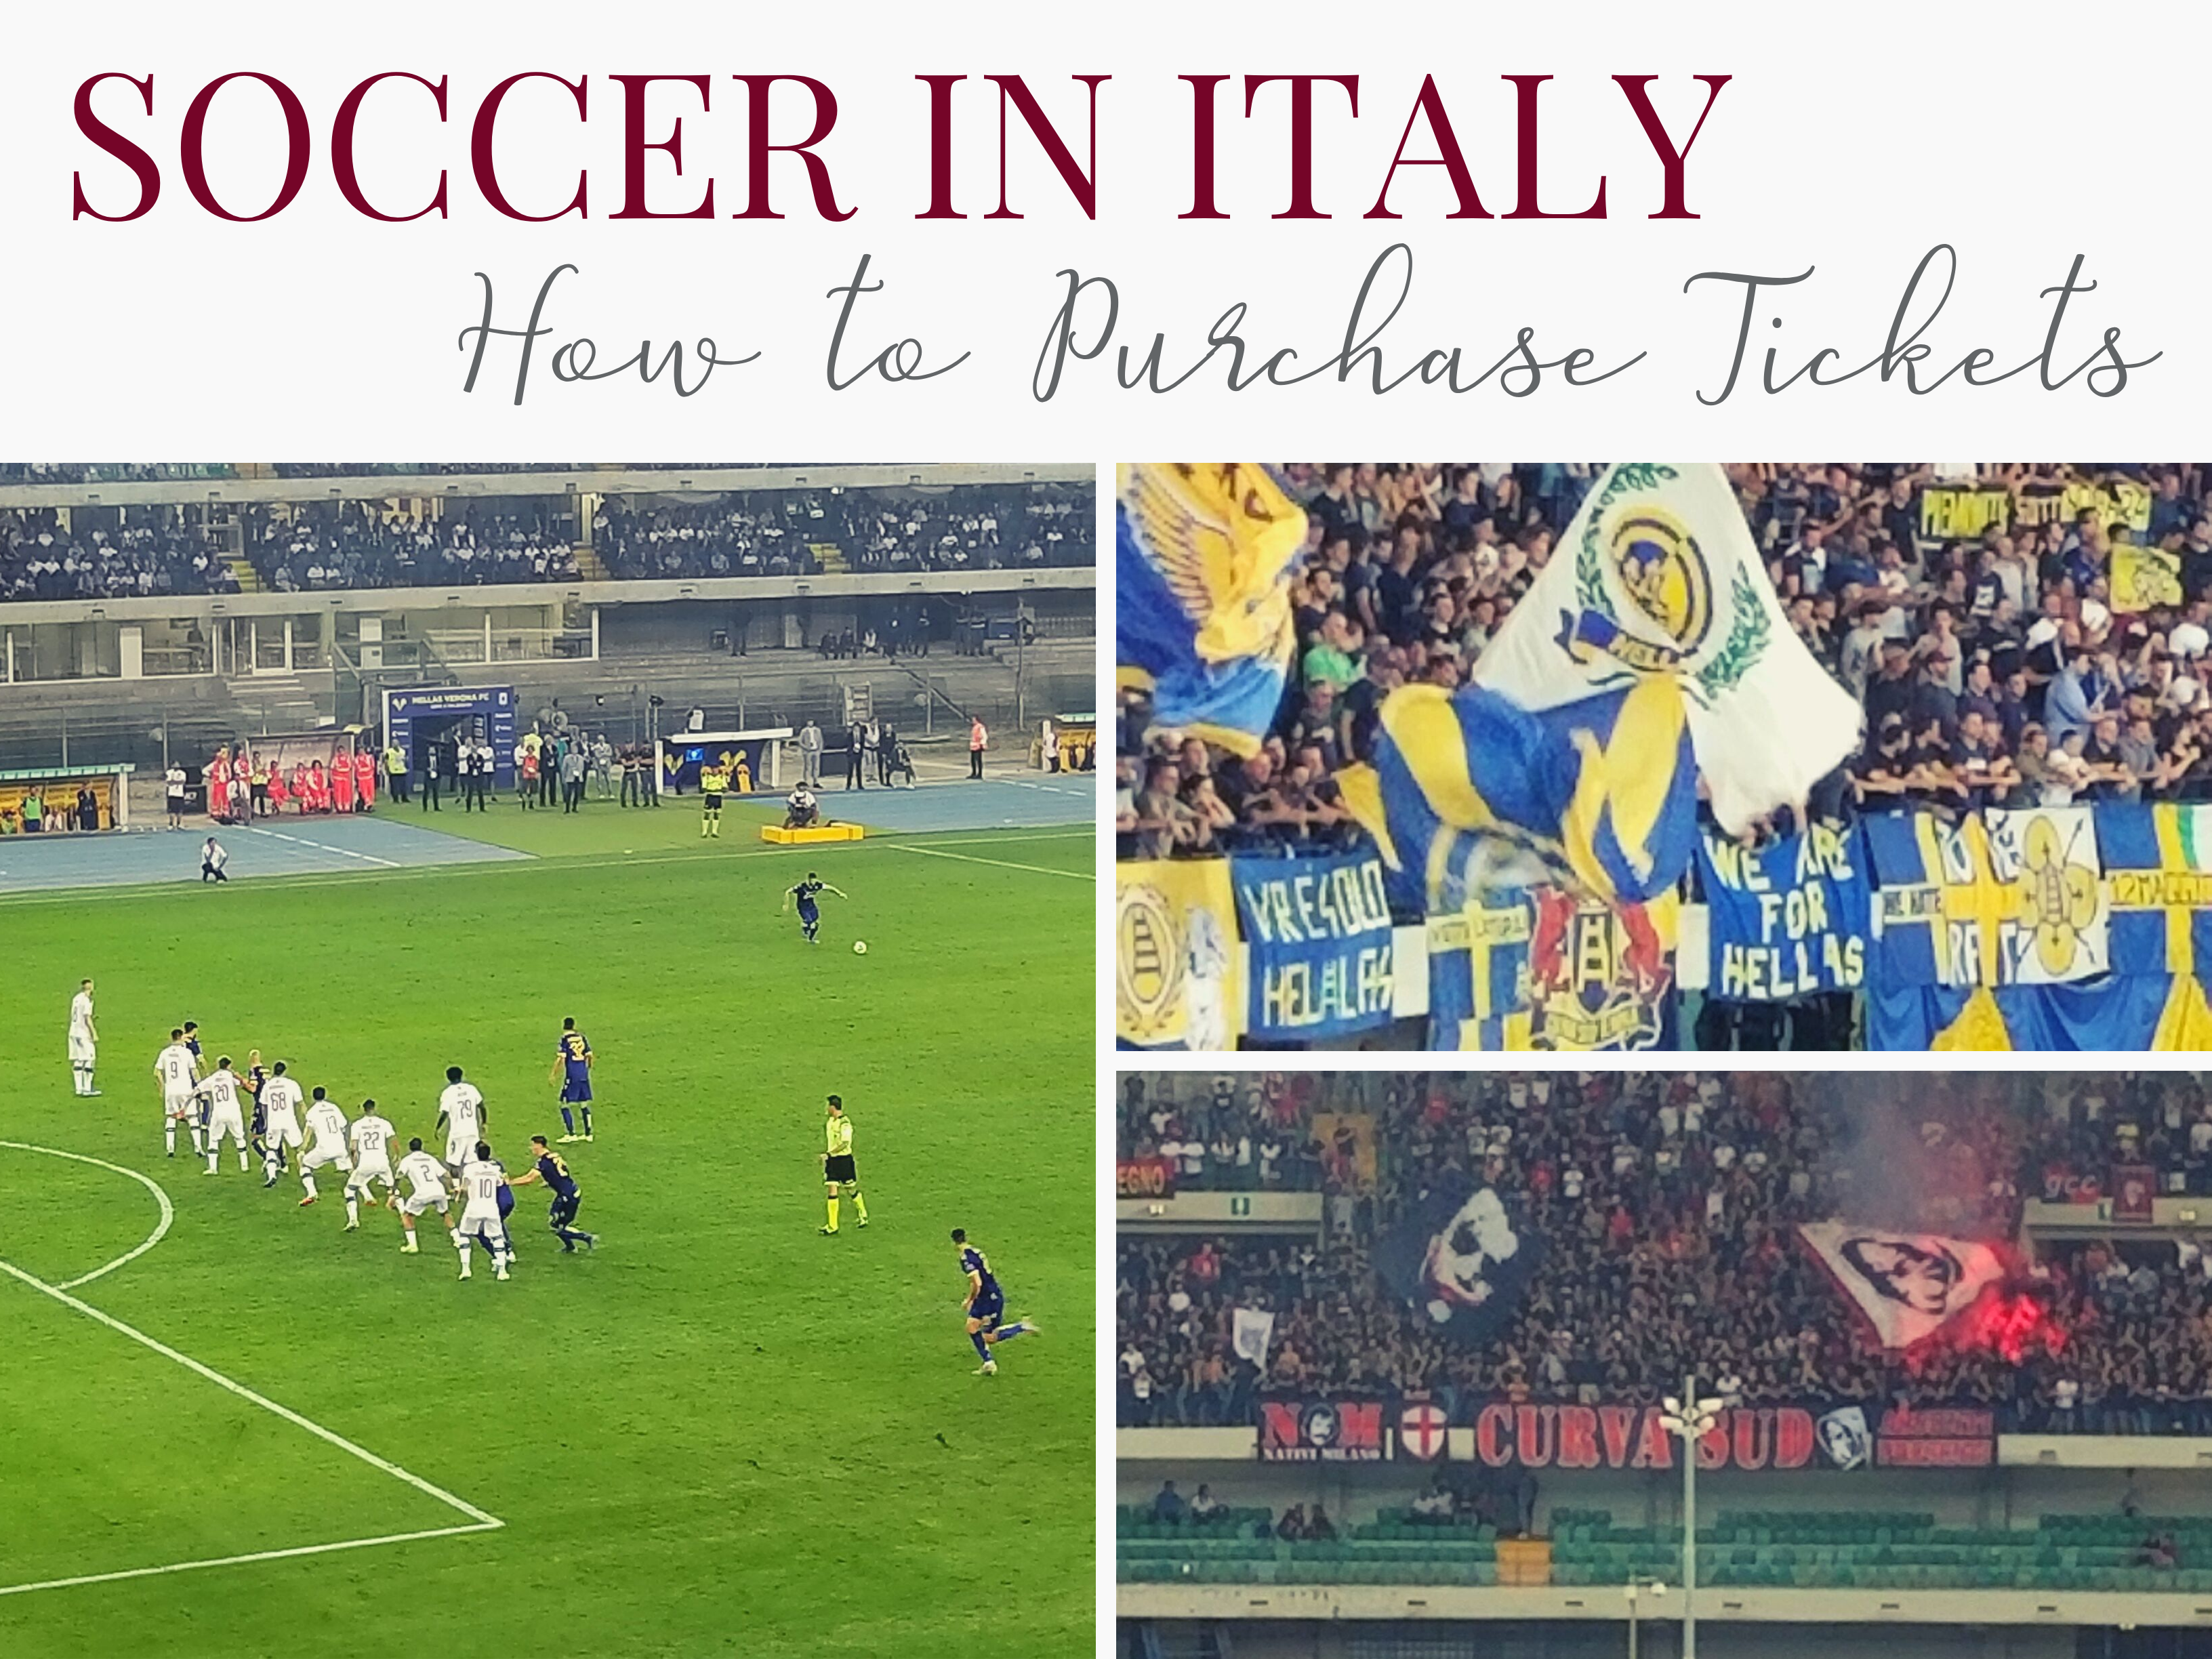 Attended a Serie A soccer game in Italy. AC Milan vs Hellas Verona. https://ouritalianjourney.com/soccer-in-italy-how-to-purchase-tickets